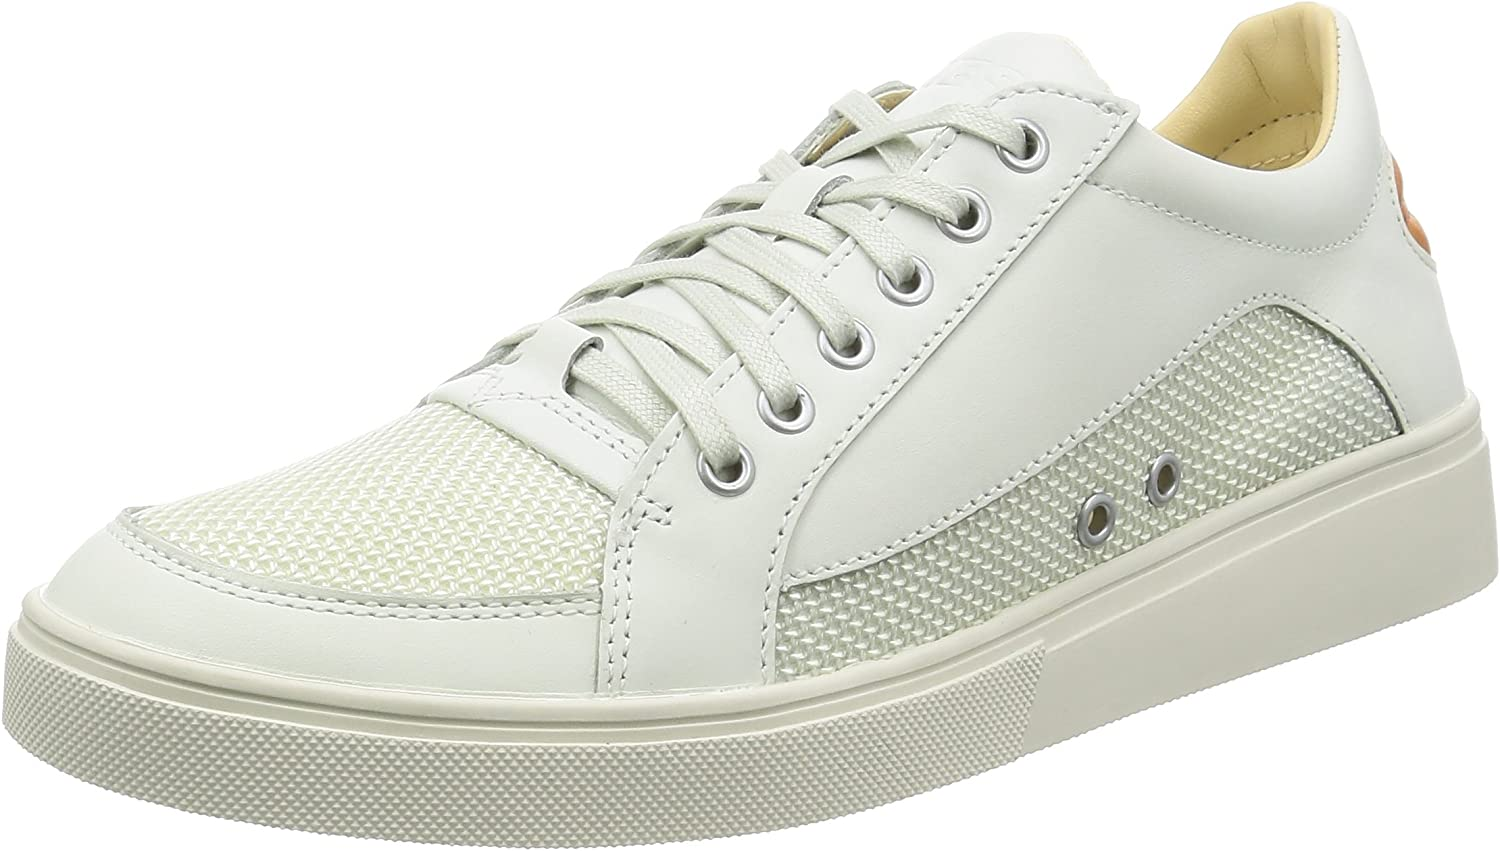 Diesel Mens Fashionisto S-Groove Low Fashion Sneaker